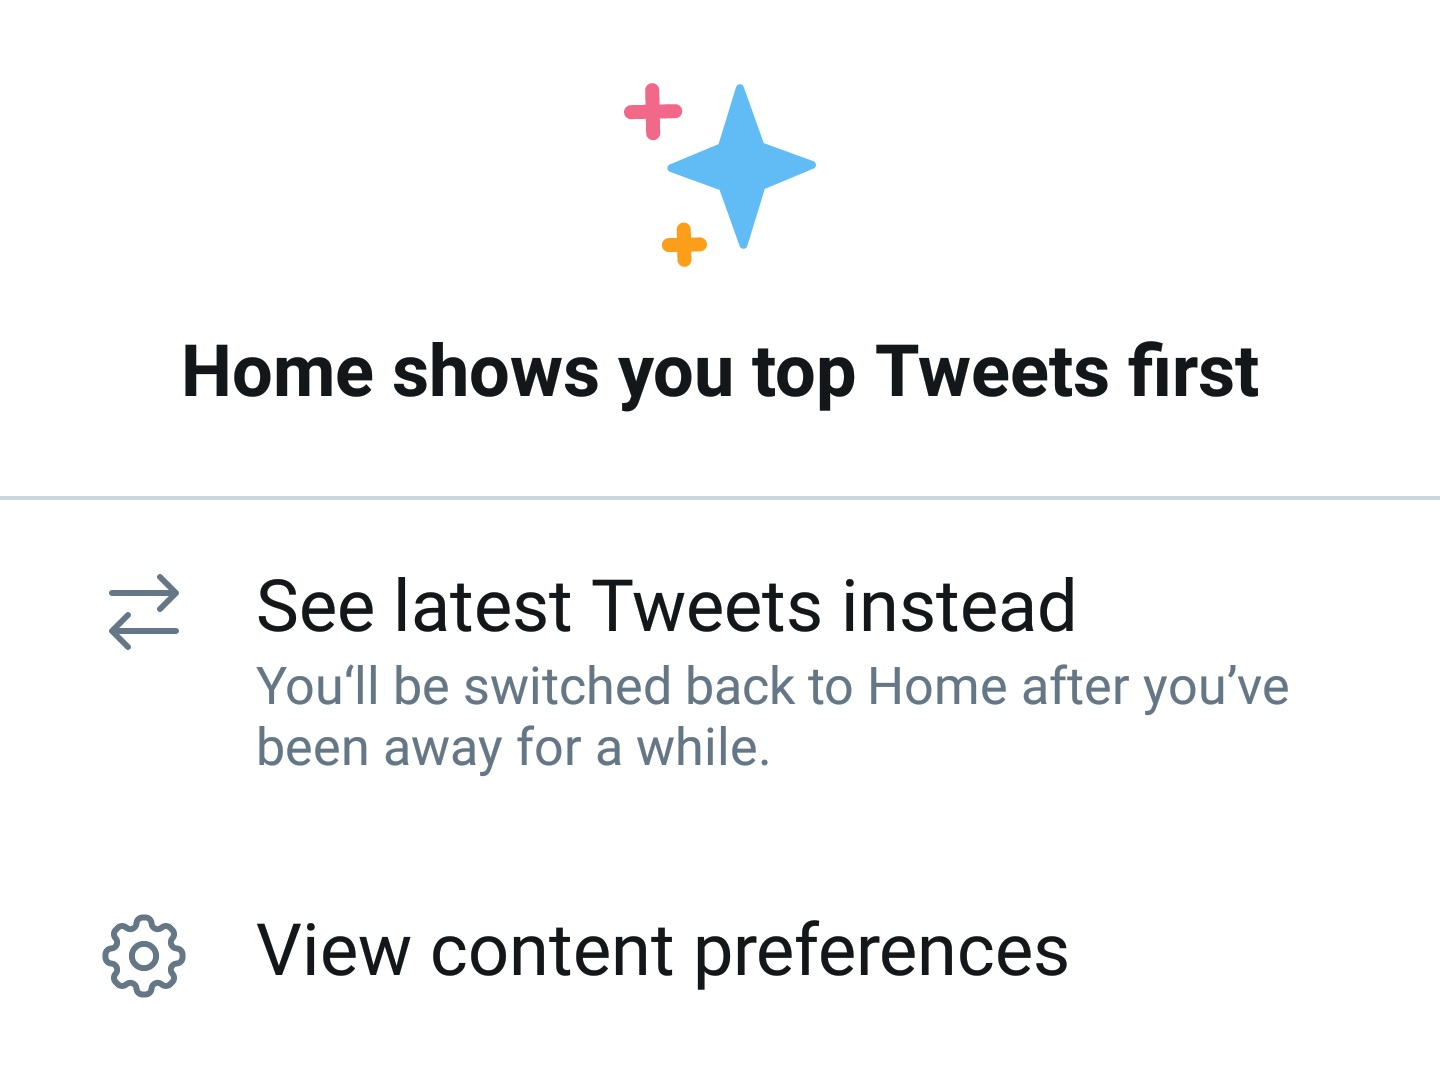 Click 'See latest Tweets' instead to revert to the chronological timeline